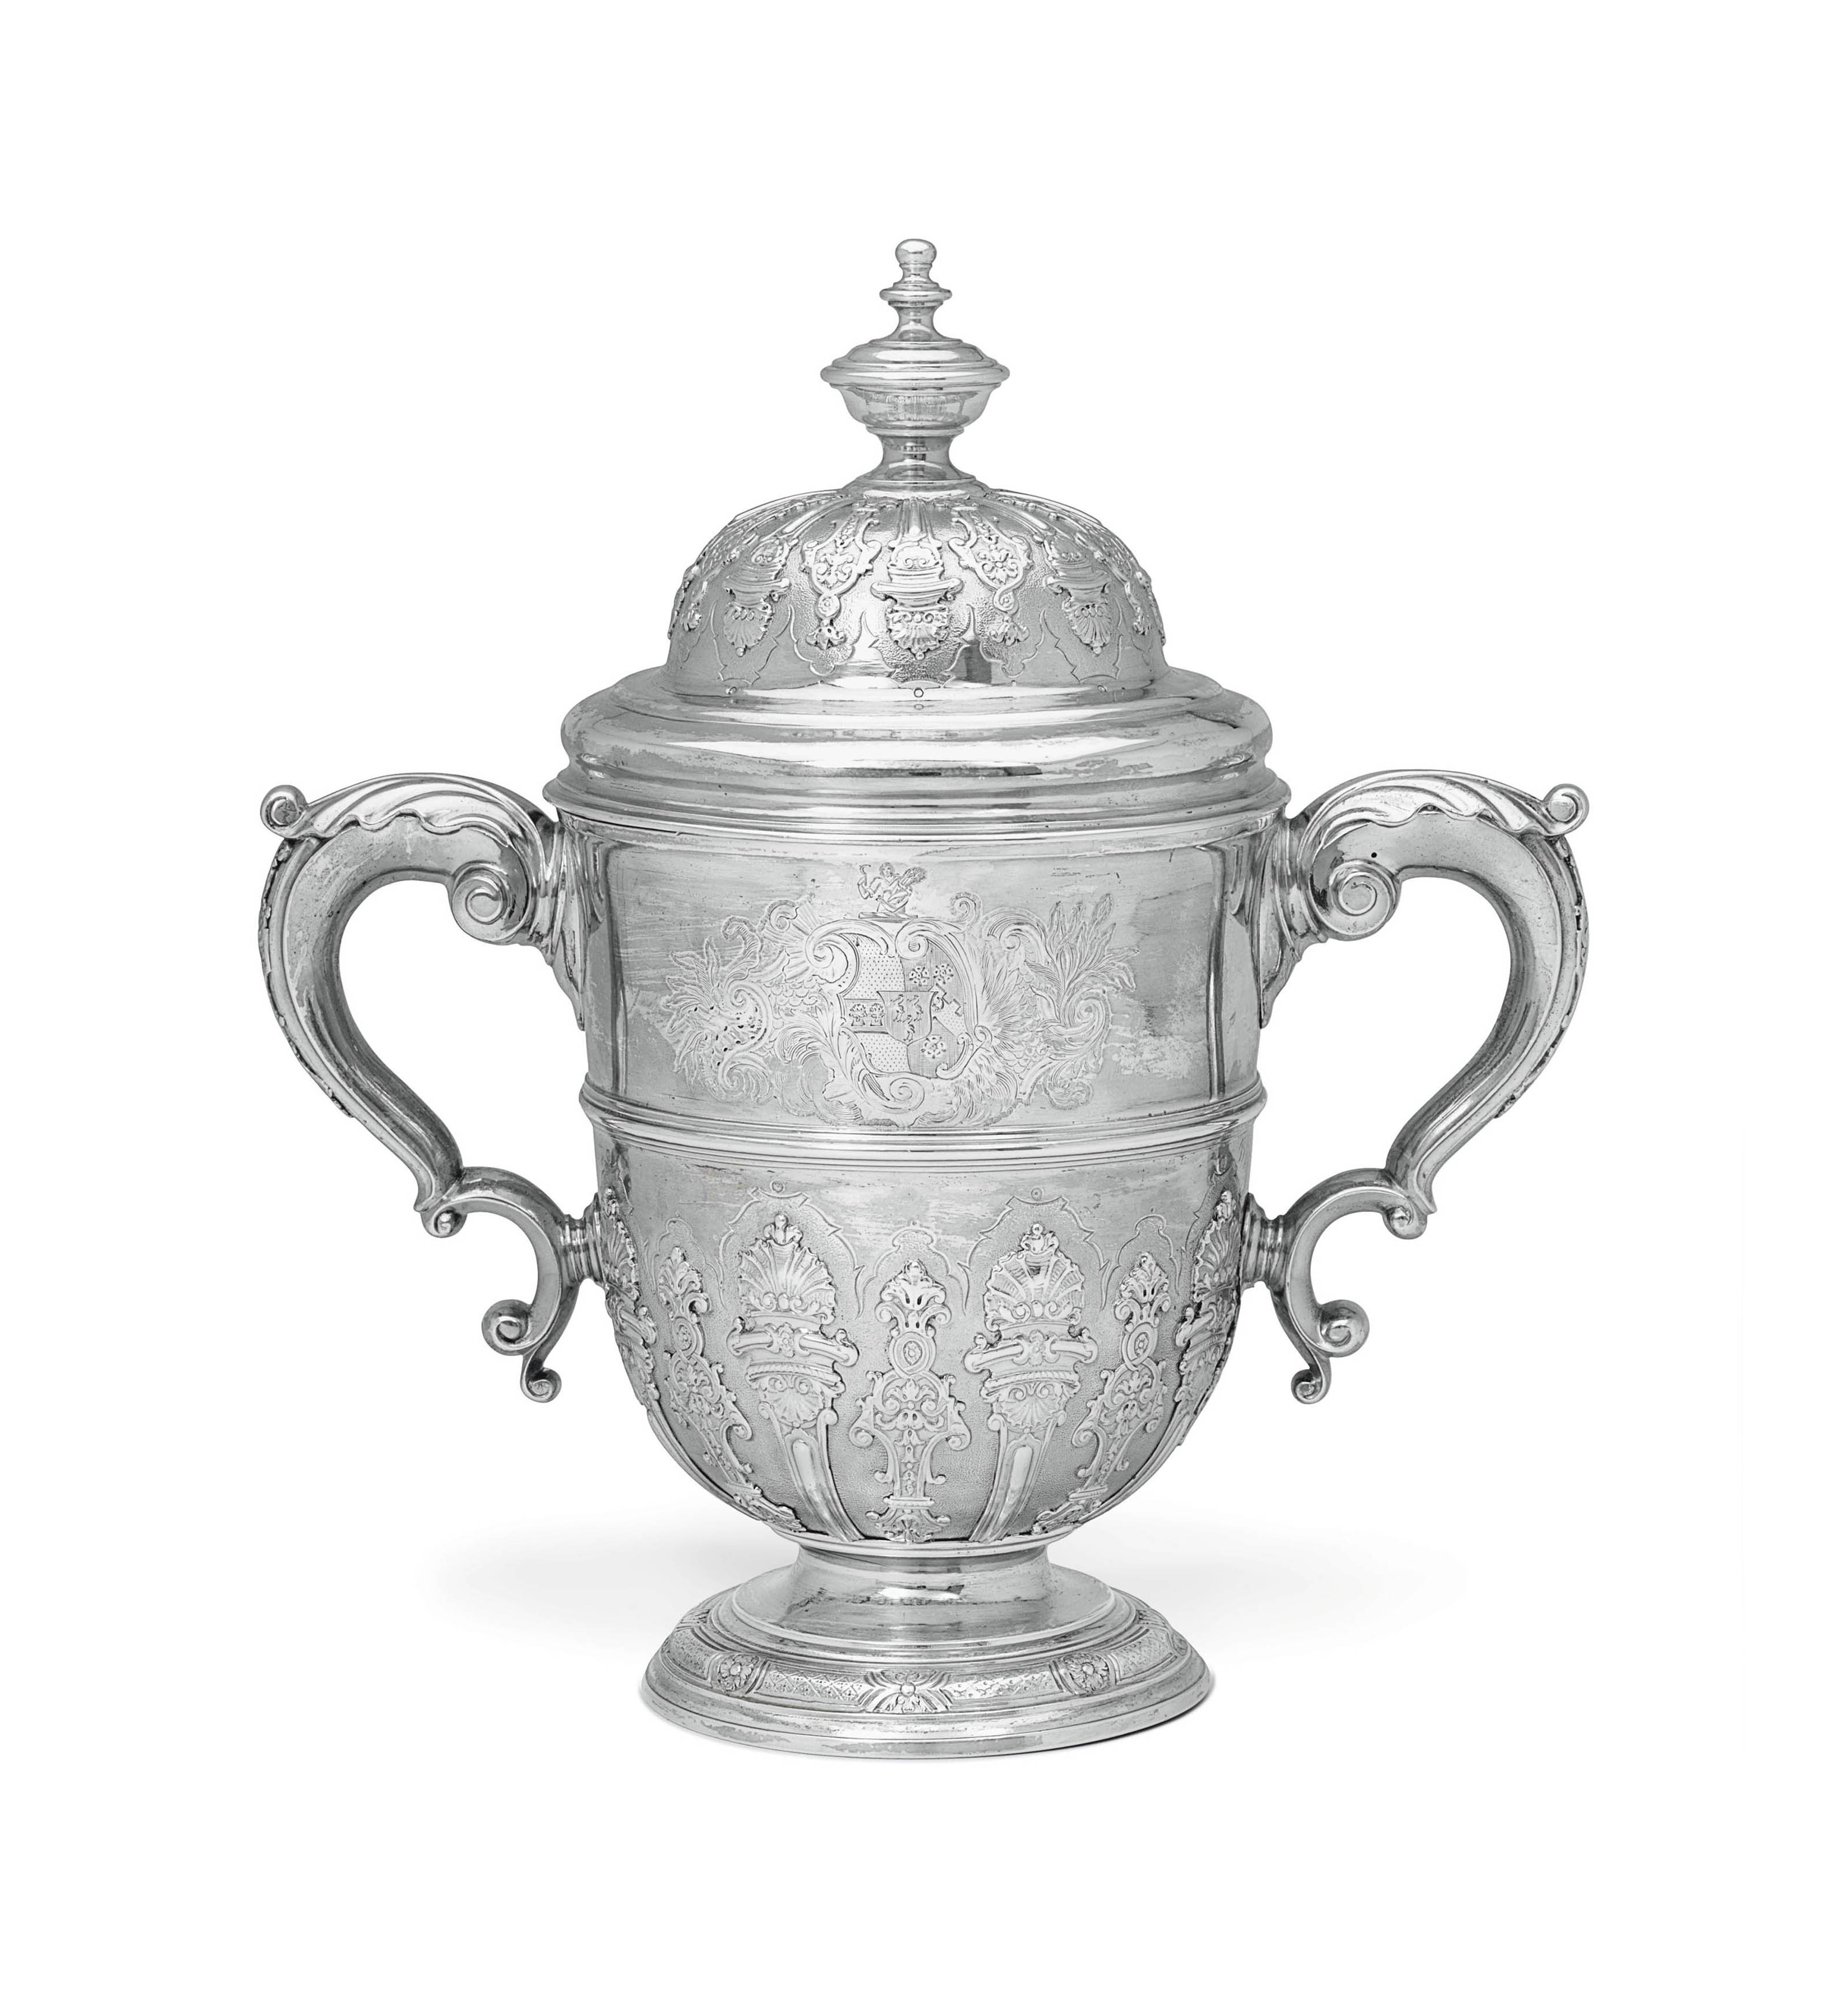 A FINE GEORGE II SILVER CUP AND COVER